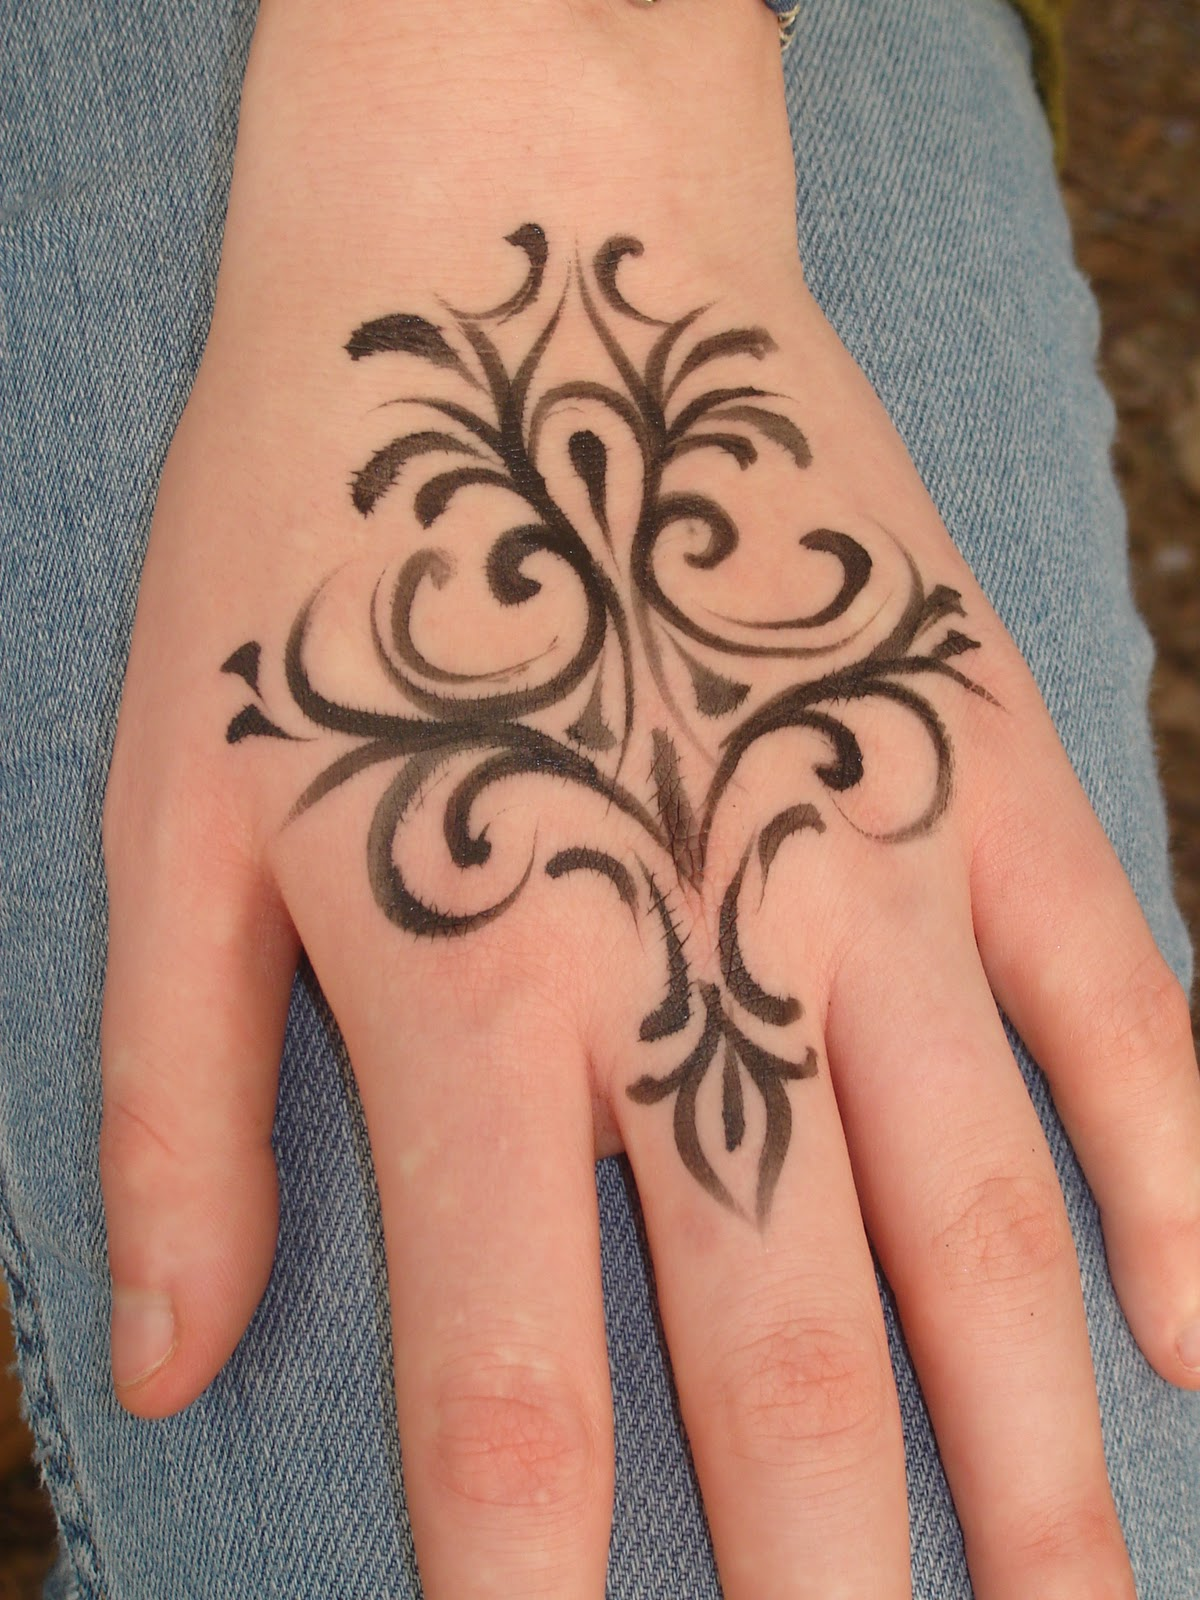 Simple Henna Tattoo Henna Tattoo: Henna Tatoo Designs